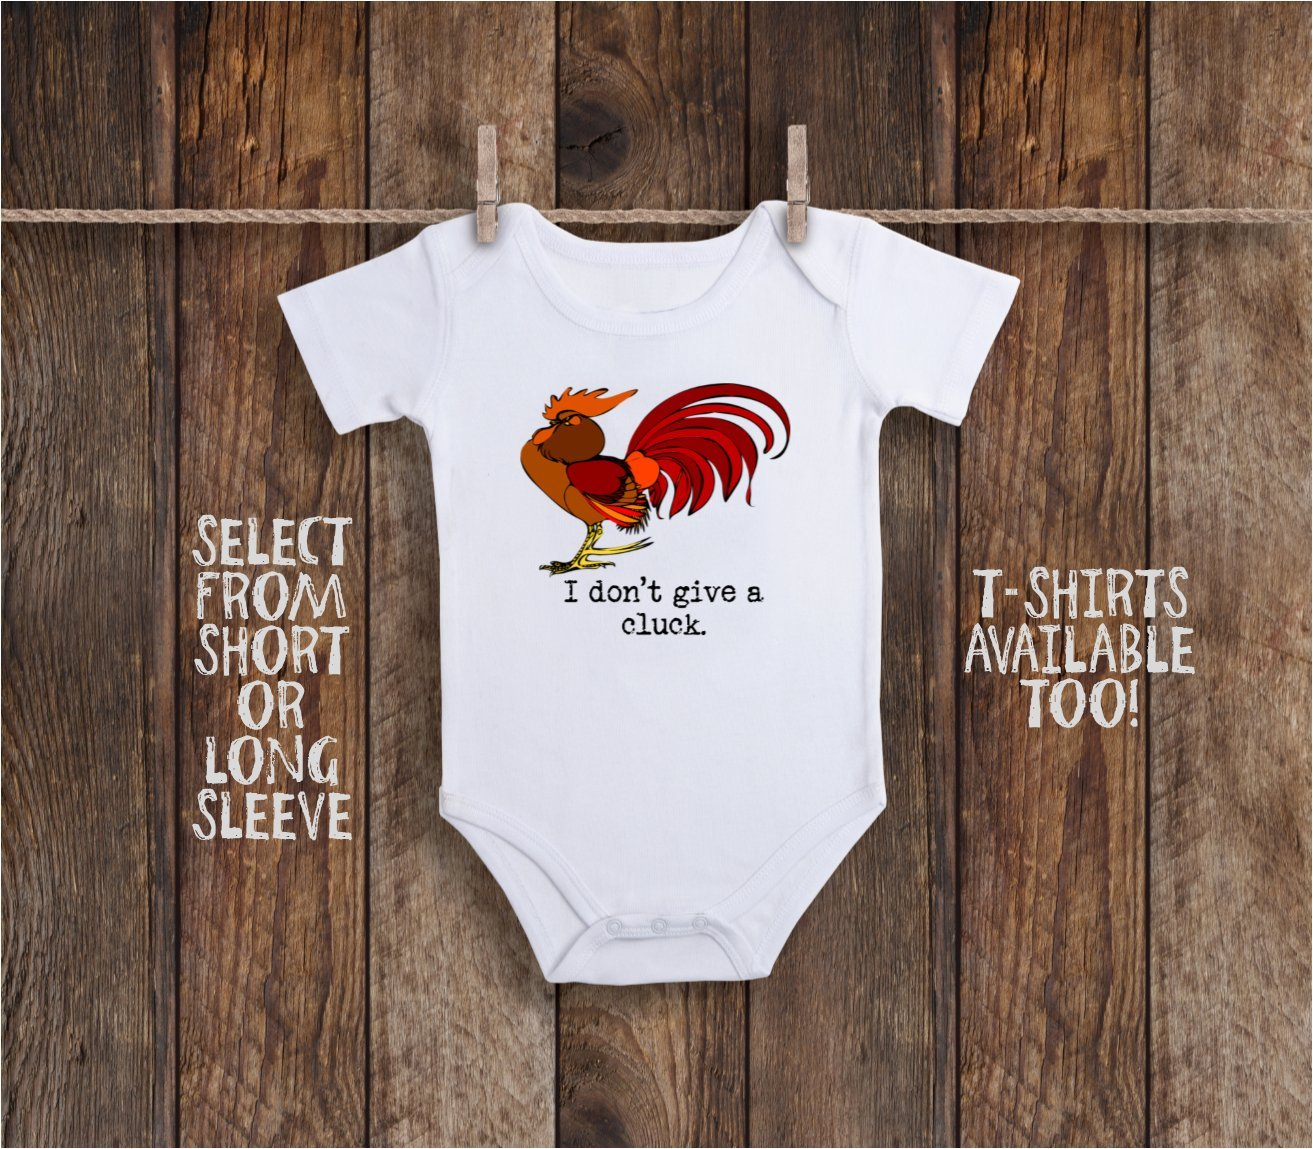 I Don't Give A Cluck Funny Baby Bodysuit For Rooster, Chicken Farmer or Farm Wife